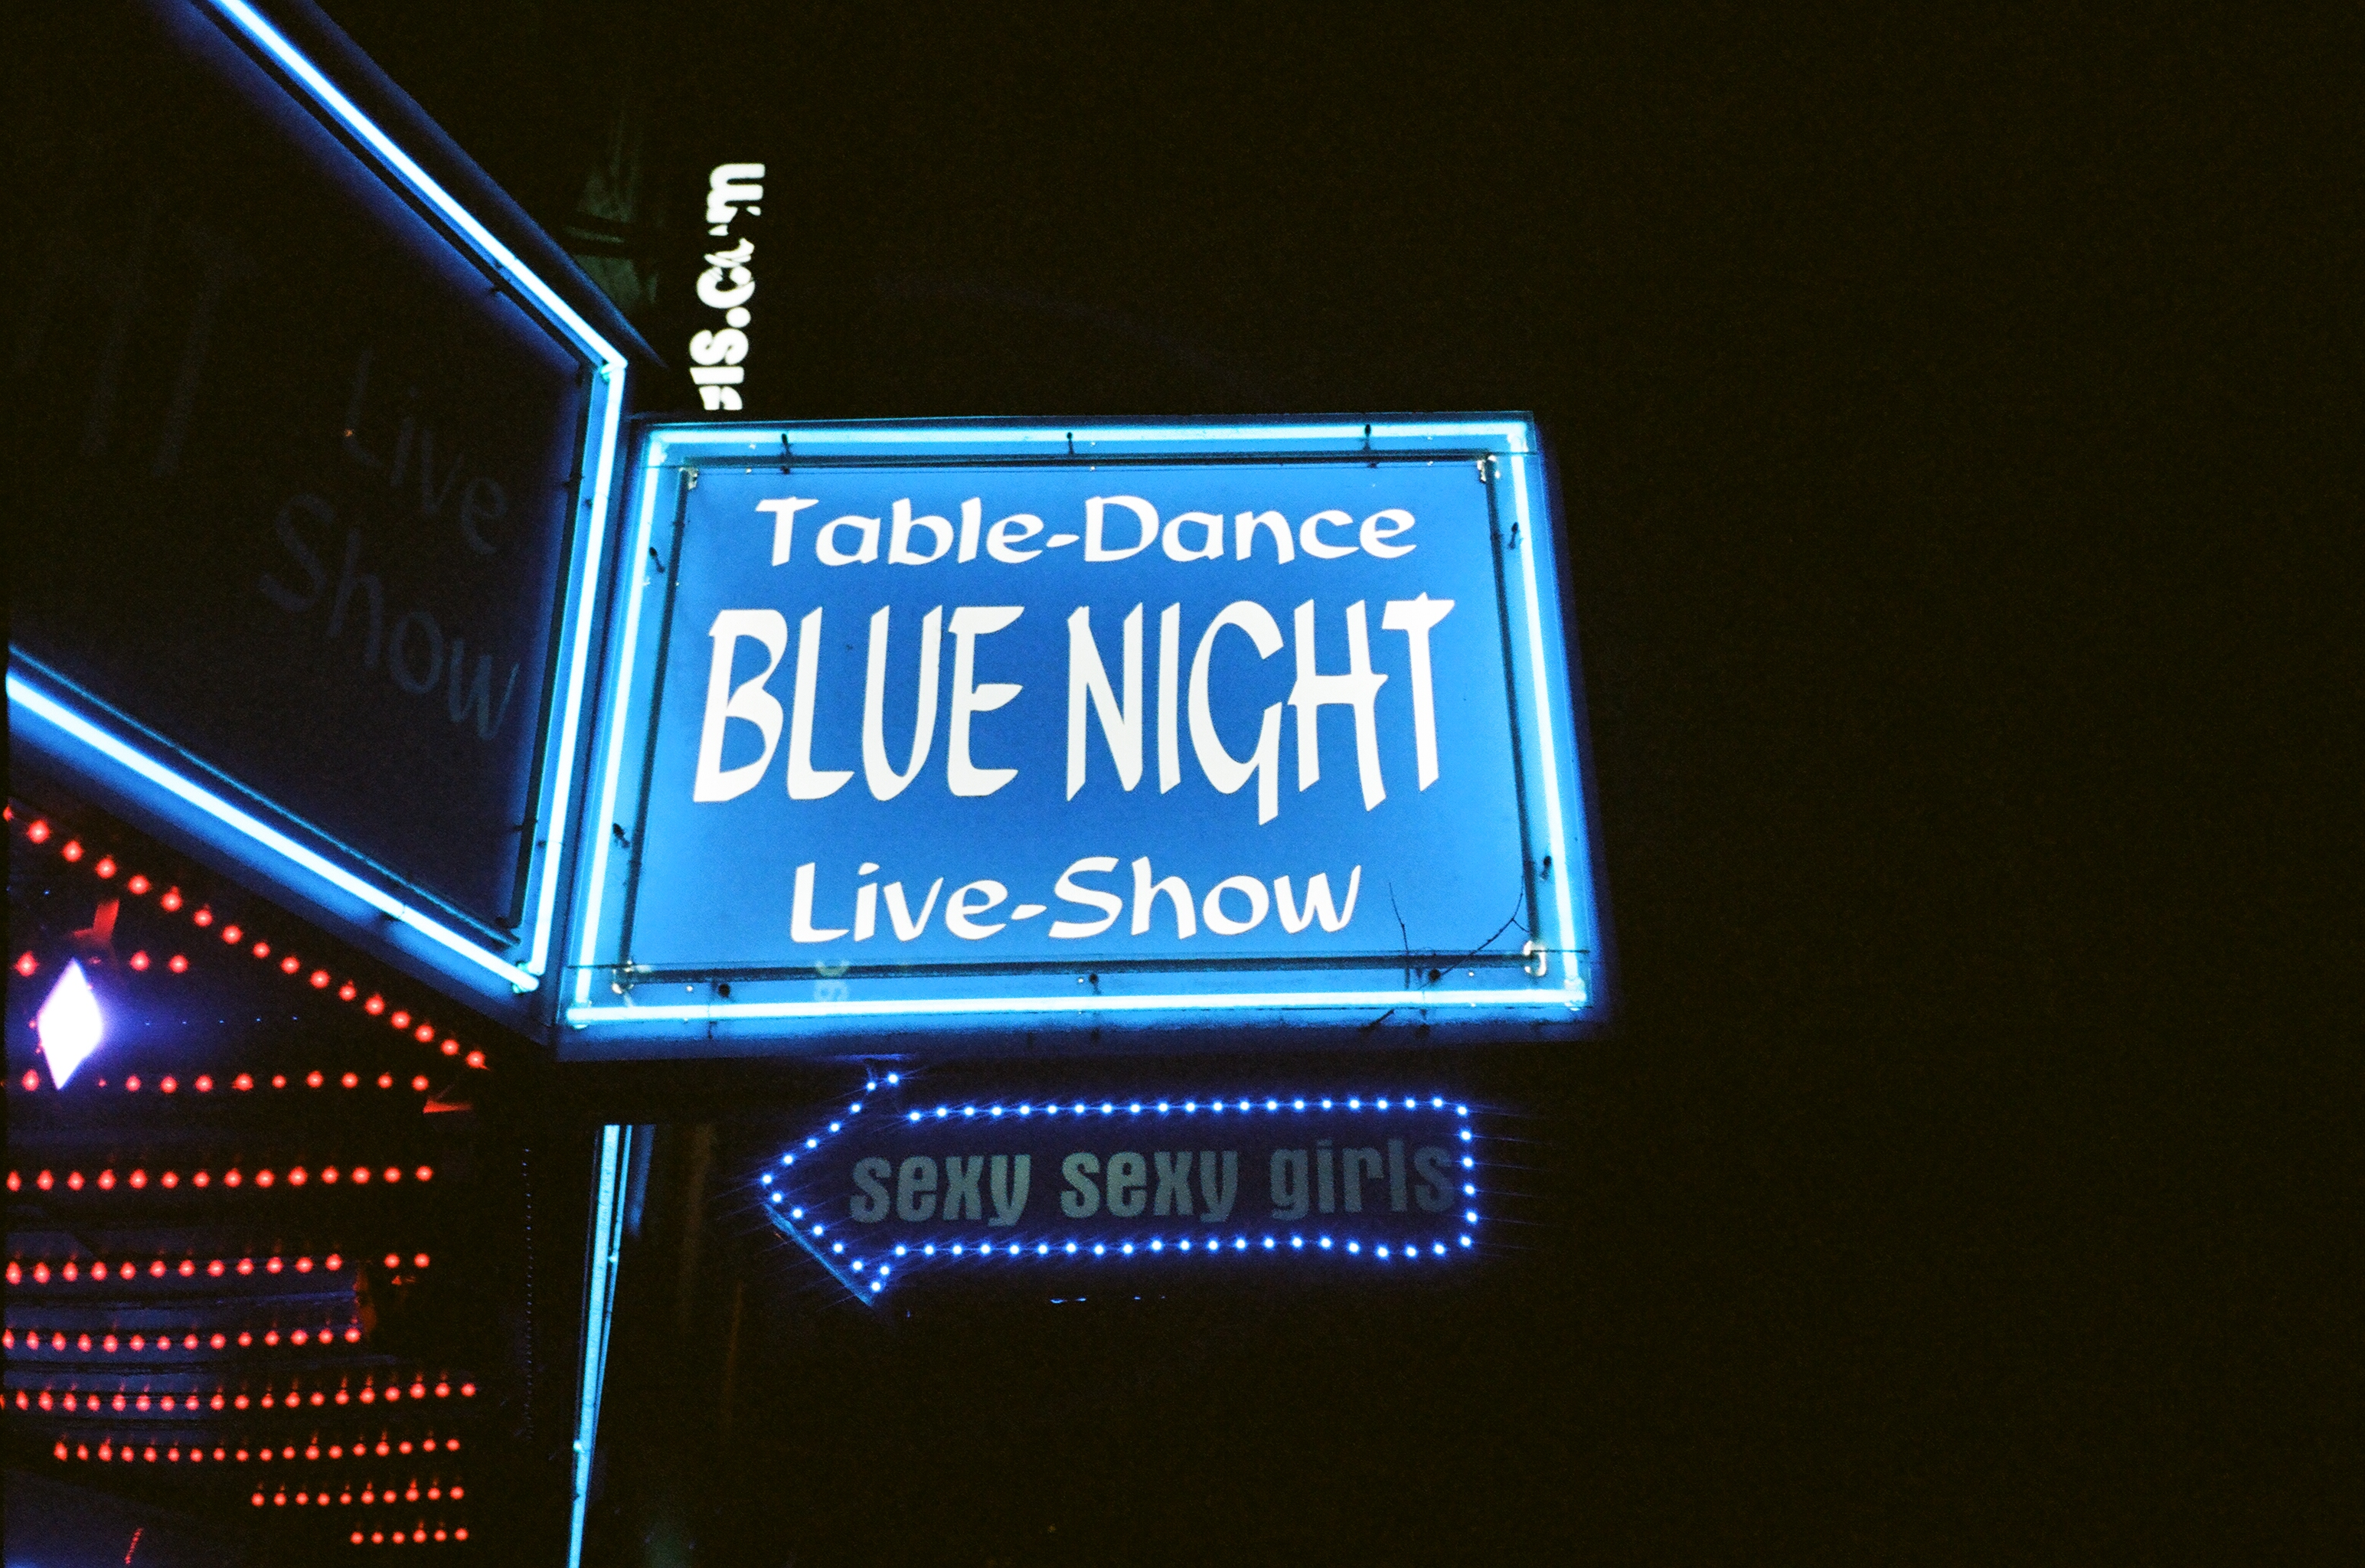 Table-Dance Blue Night Signage